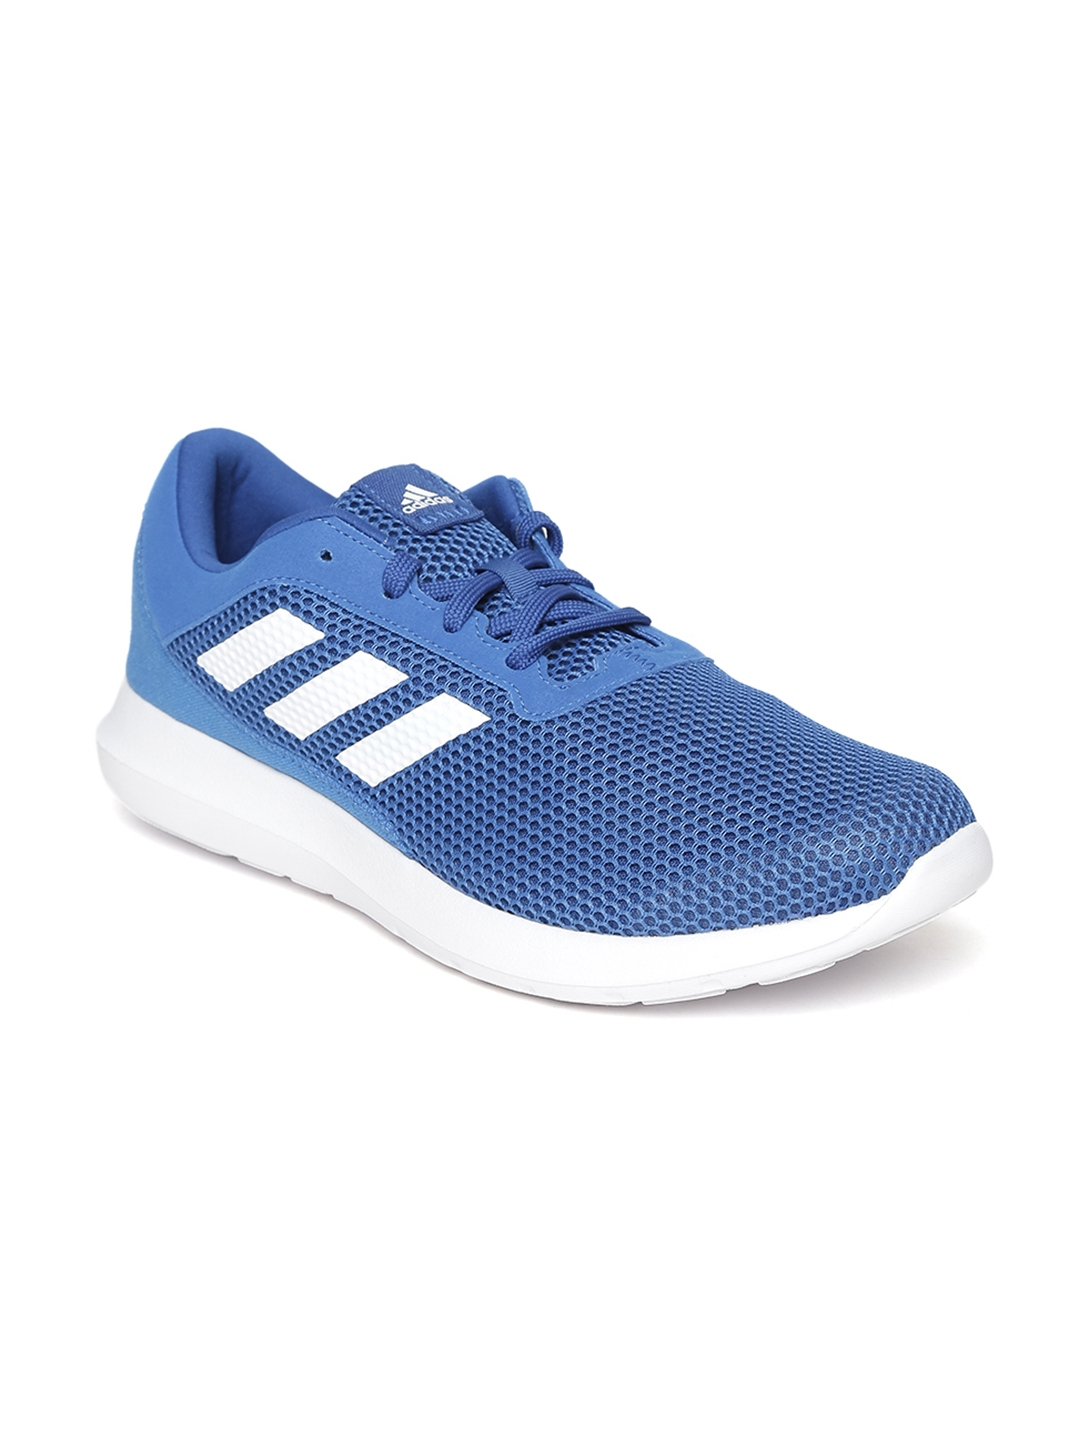 513440b17f1 Buy ADIDAS Men Blue Element Refresh 3 M Running Shoes - Sports Shoes ...